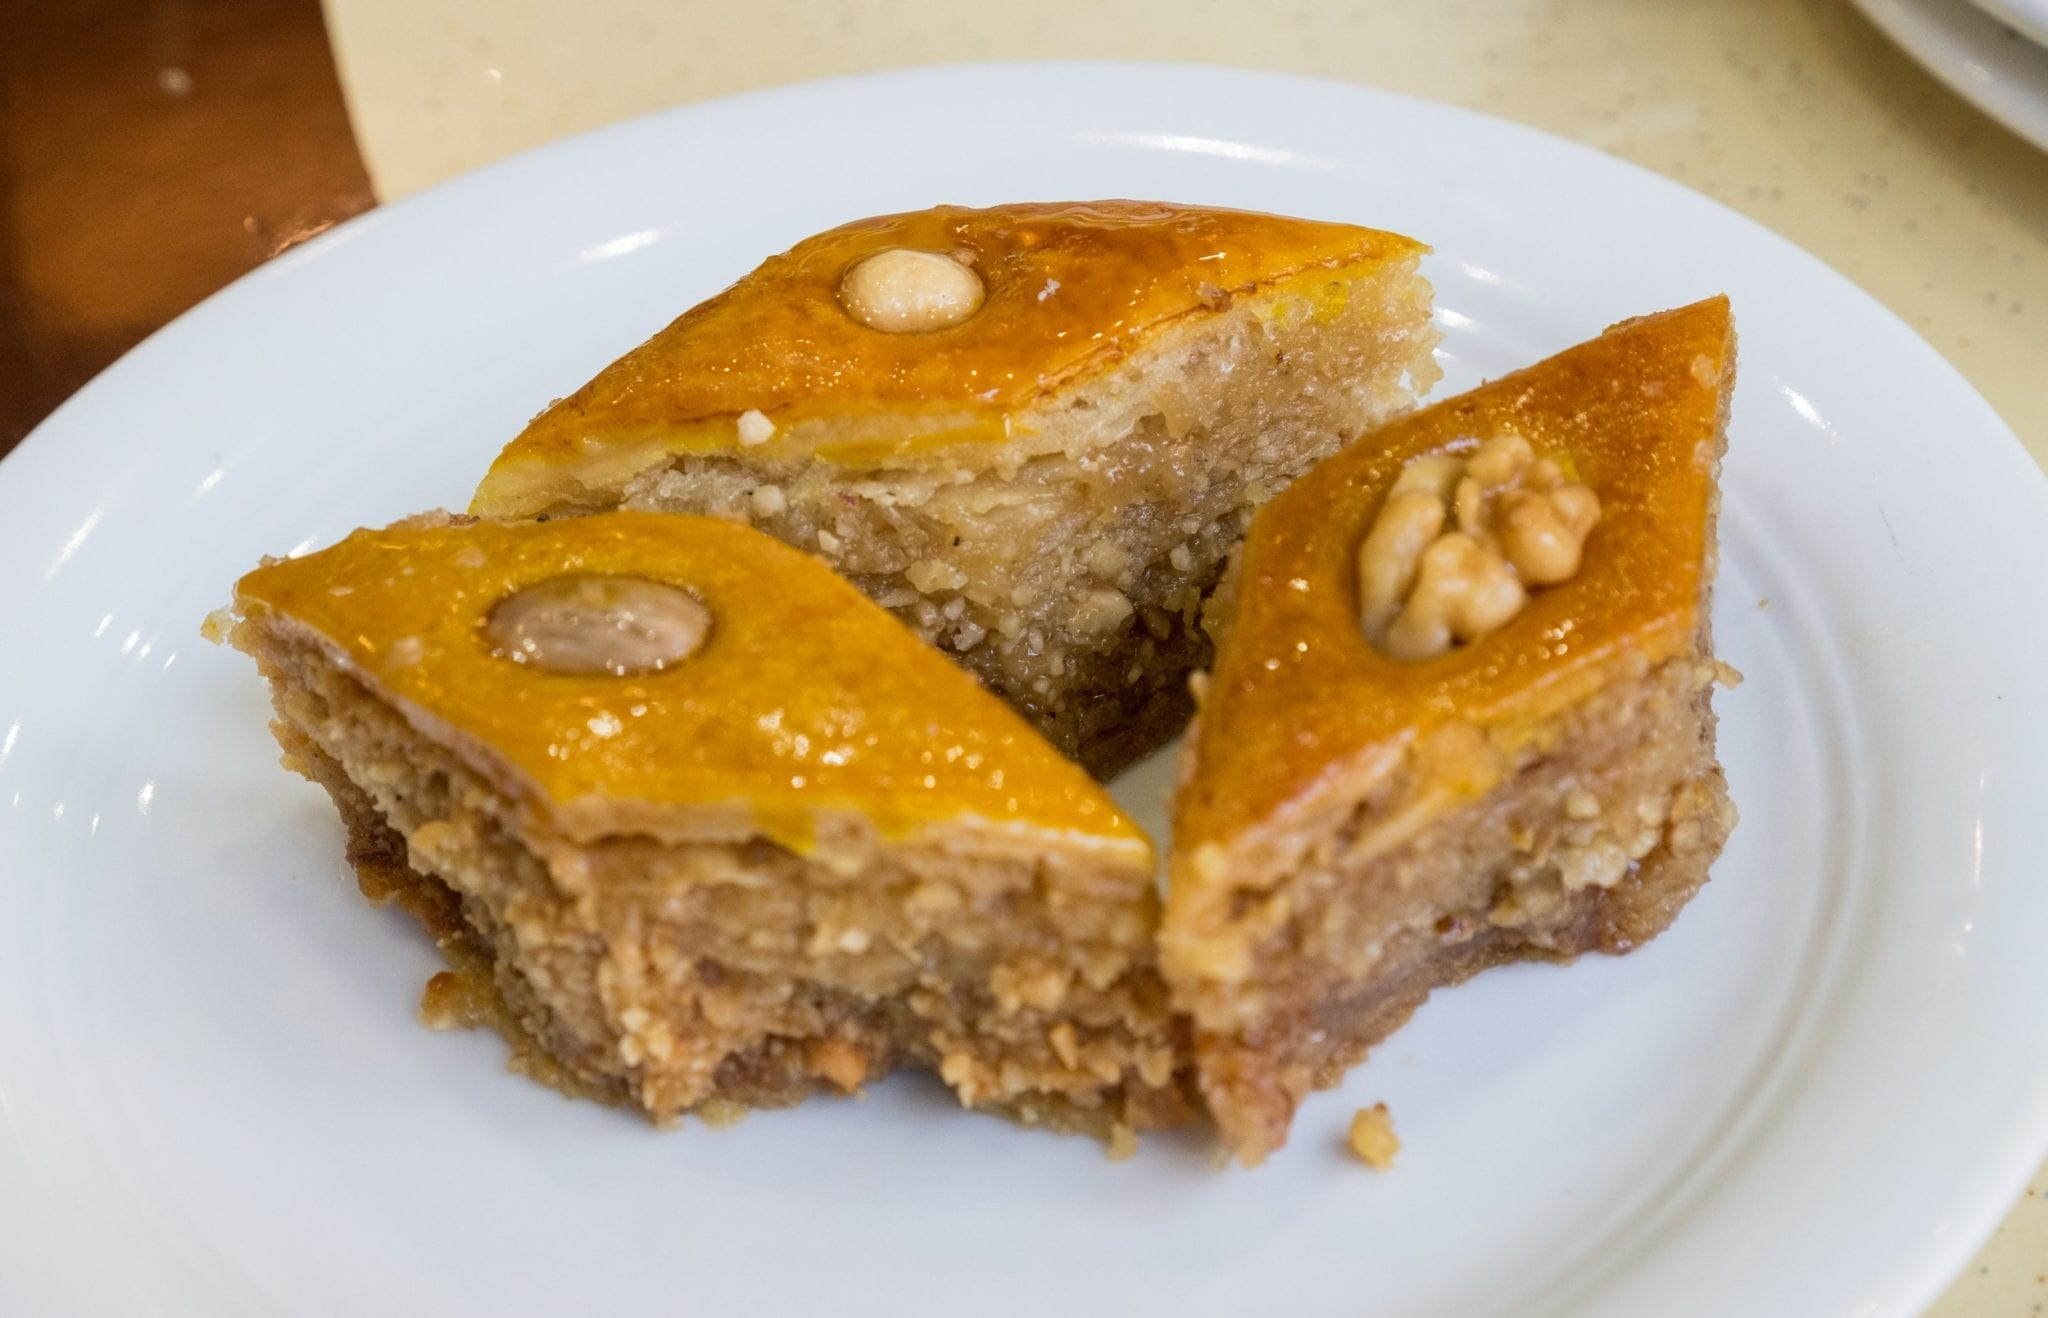 Three pieces of baklava, one topped with an almond, one with a walnut, one with a hazelnut.